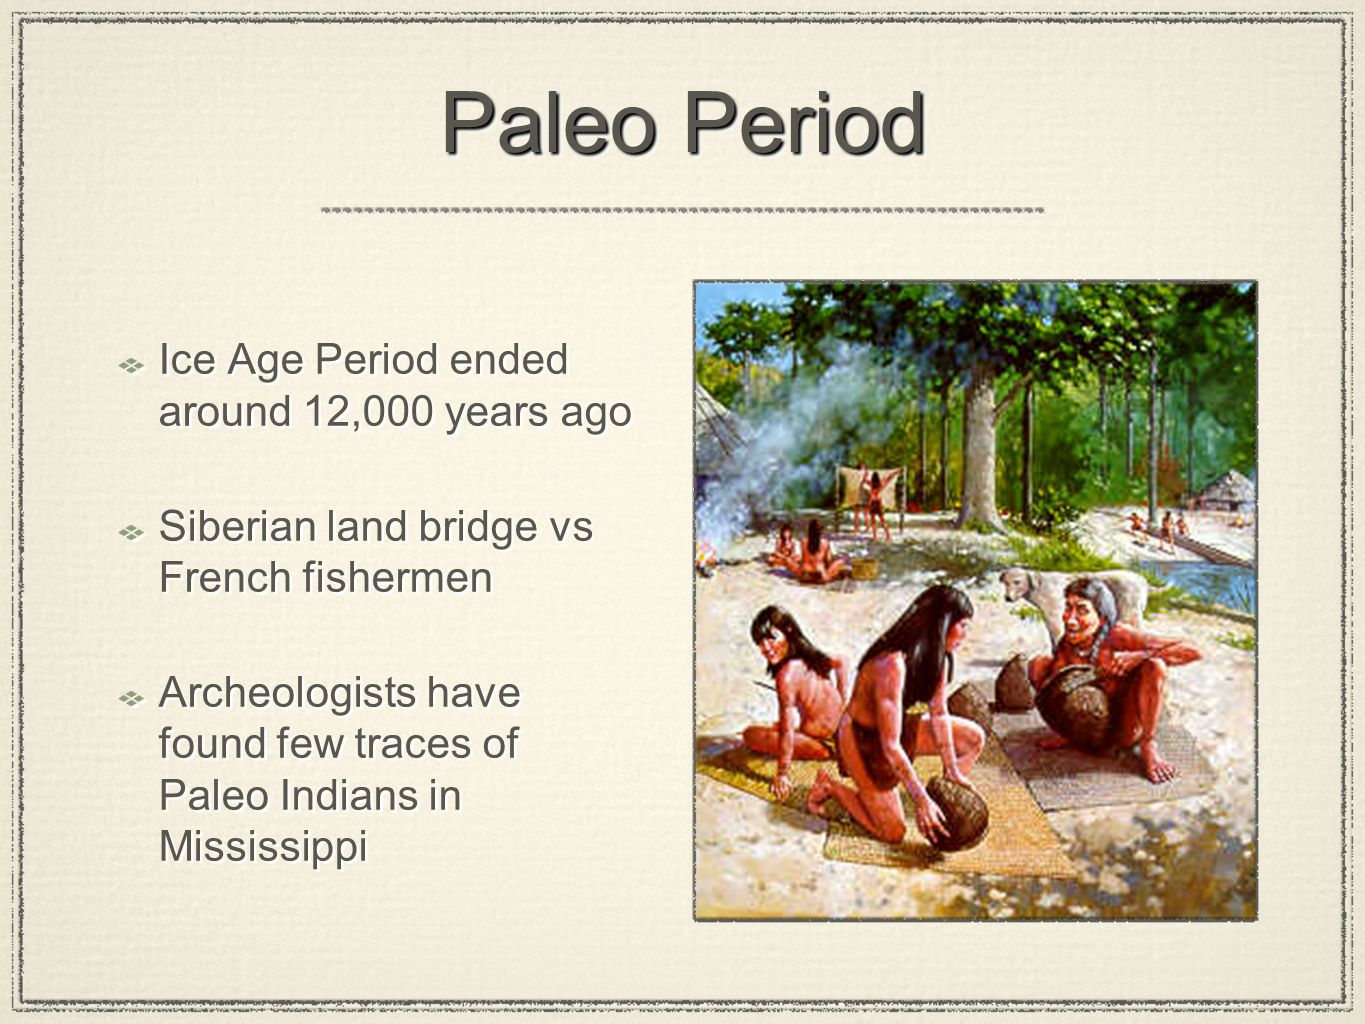 Paleo Period Ice Age Period ended around 12,000 years ago